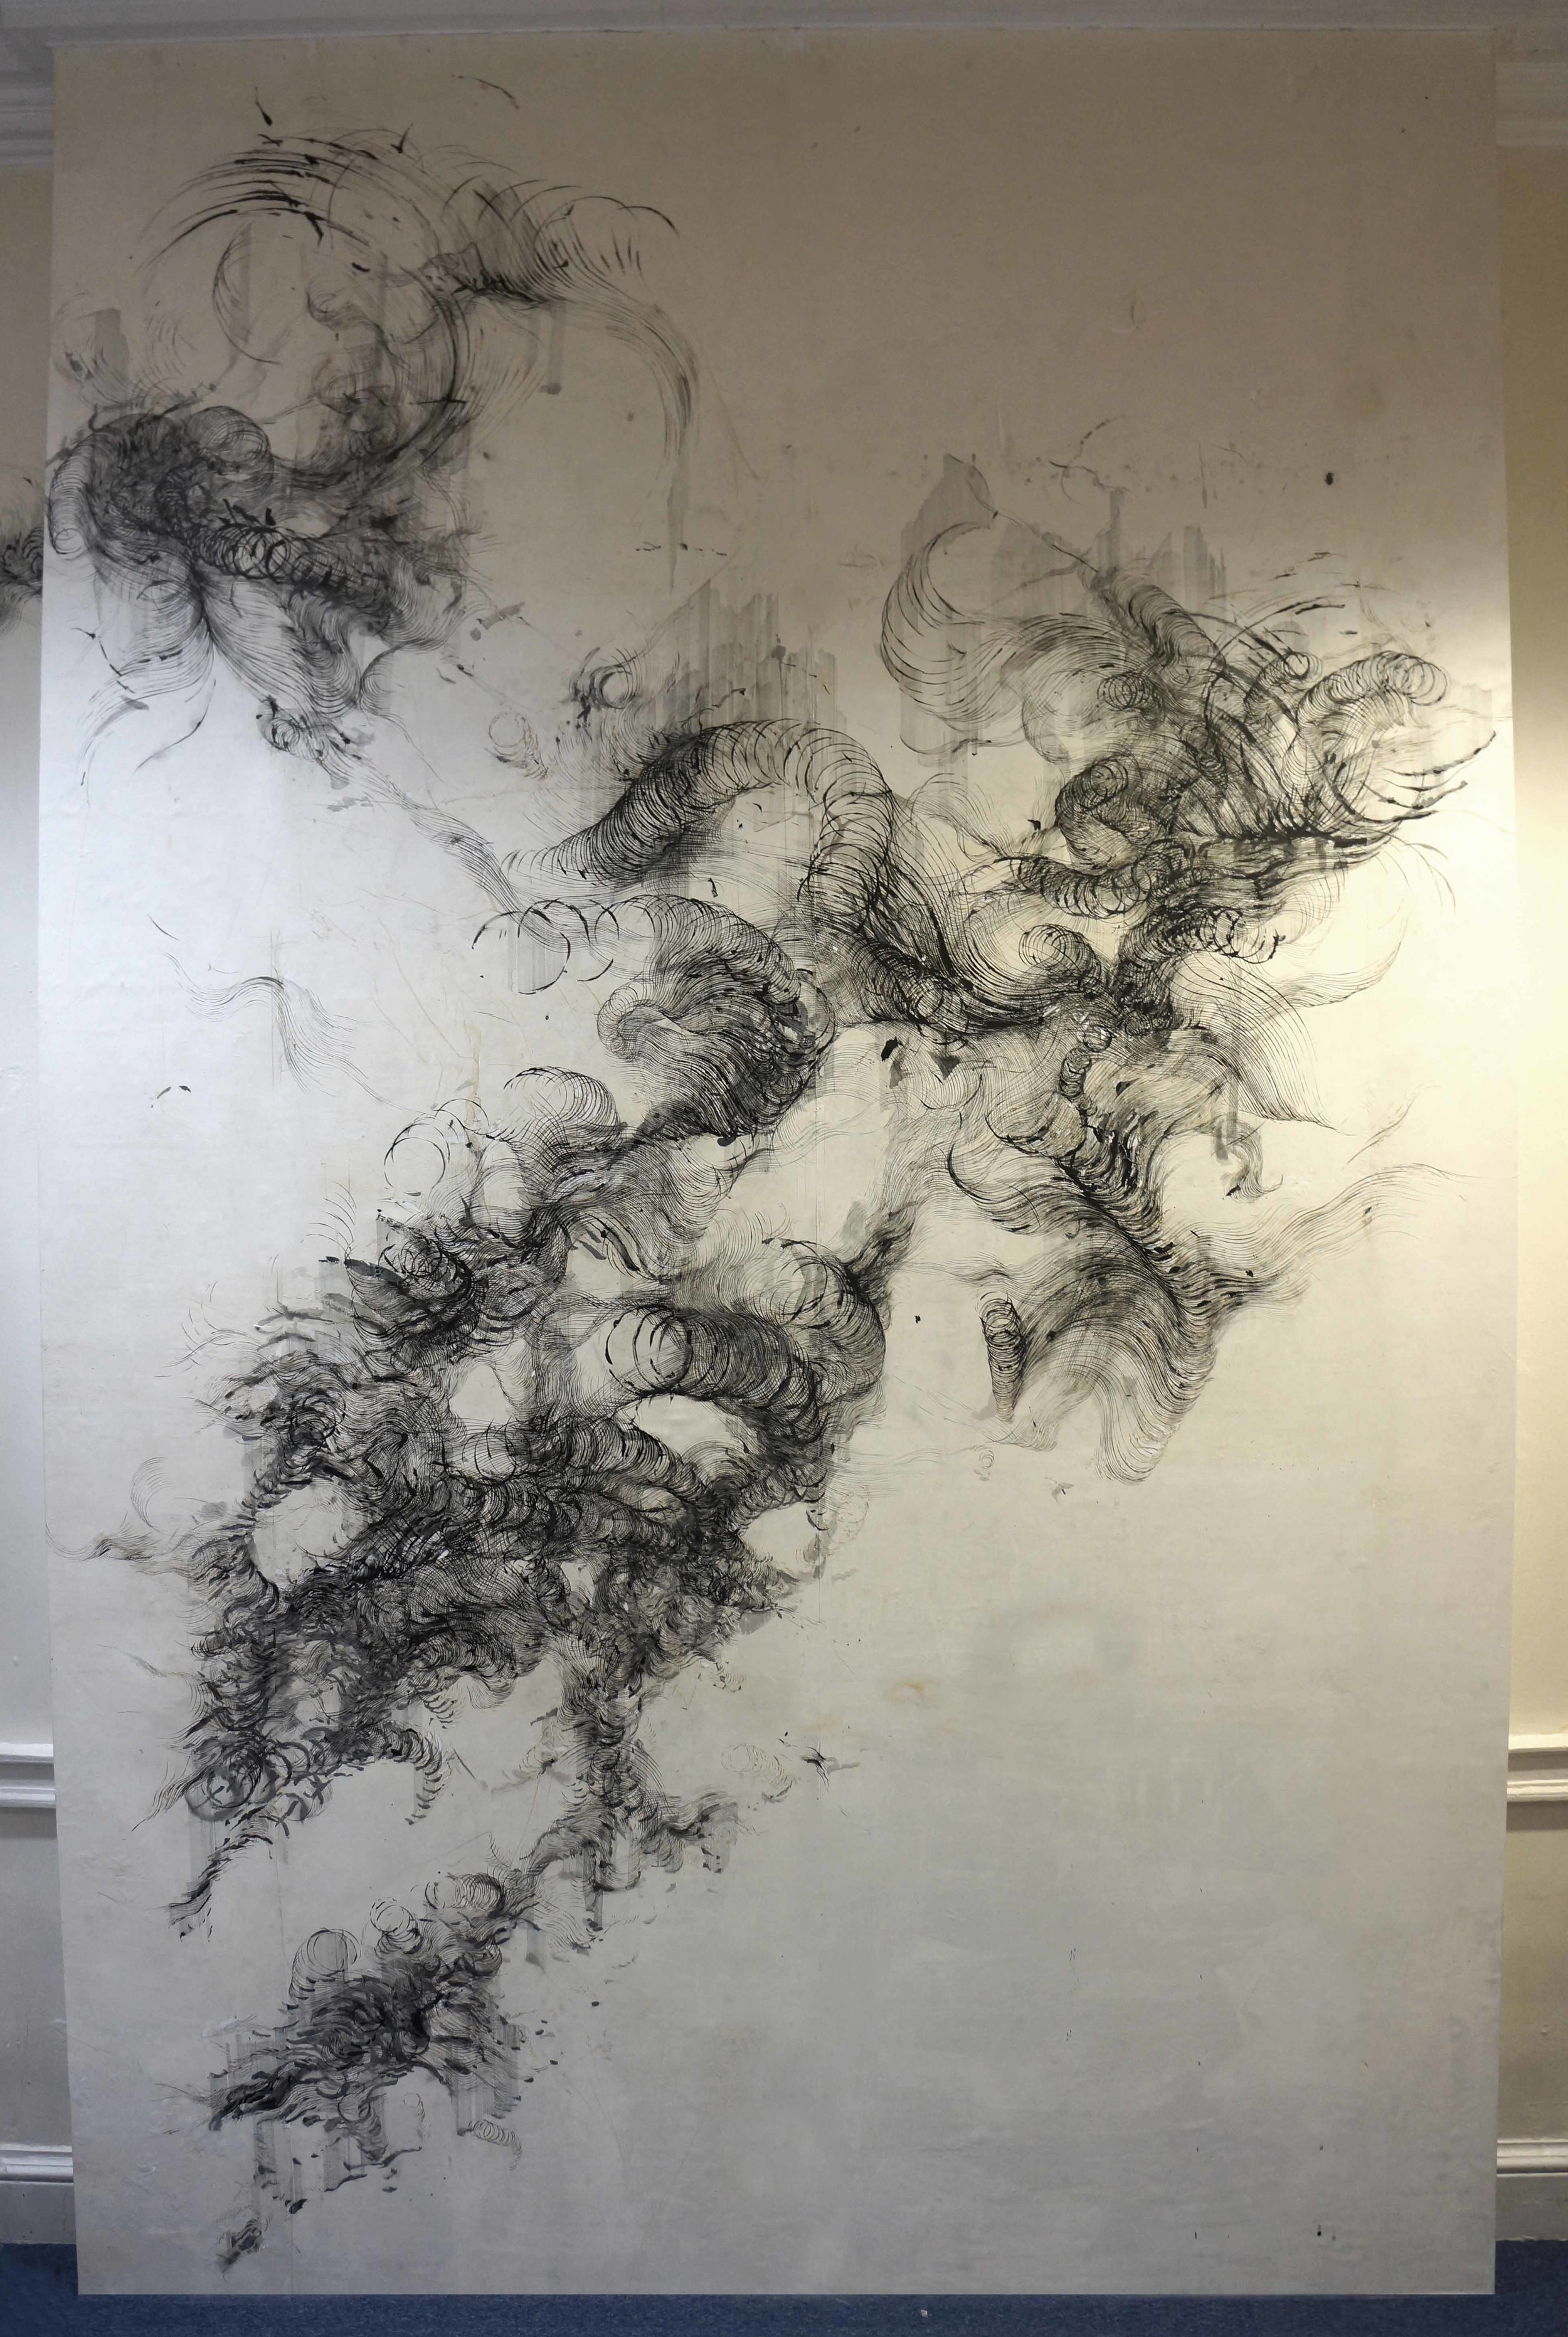 'Anatomy of thought', ink and incense burnt gampi paper on wall, 420 x 350 cm